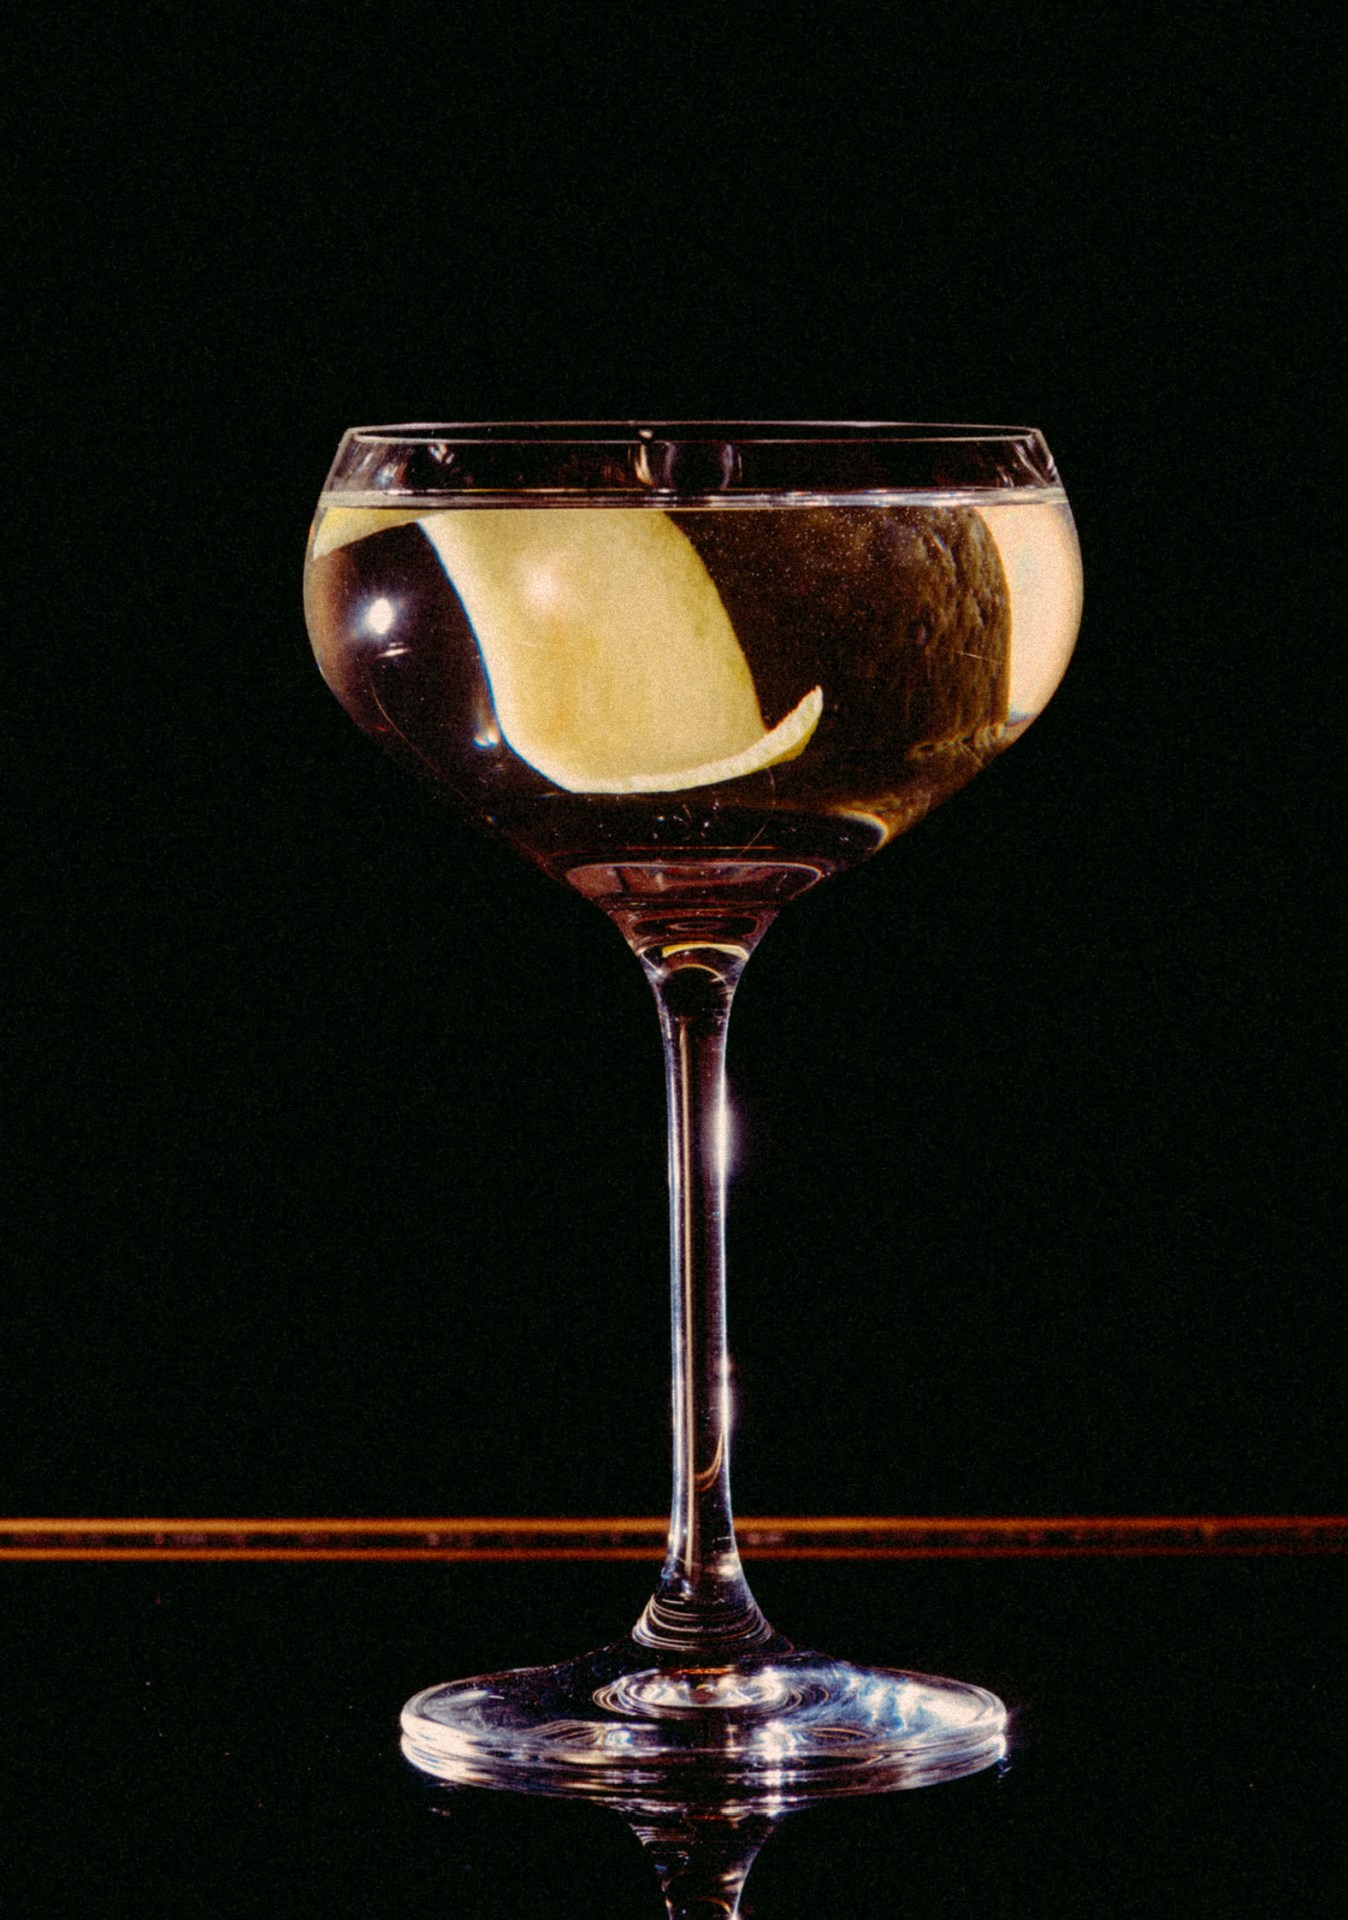 """Recipe: 5cl Plymouth Gin 3cl Russian Standard Vodka 2cl Lillet Blanc Lemon Twist """"More is More"""""""